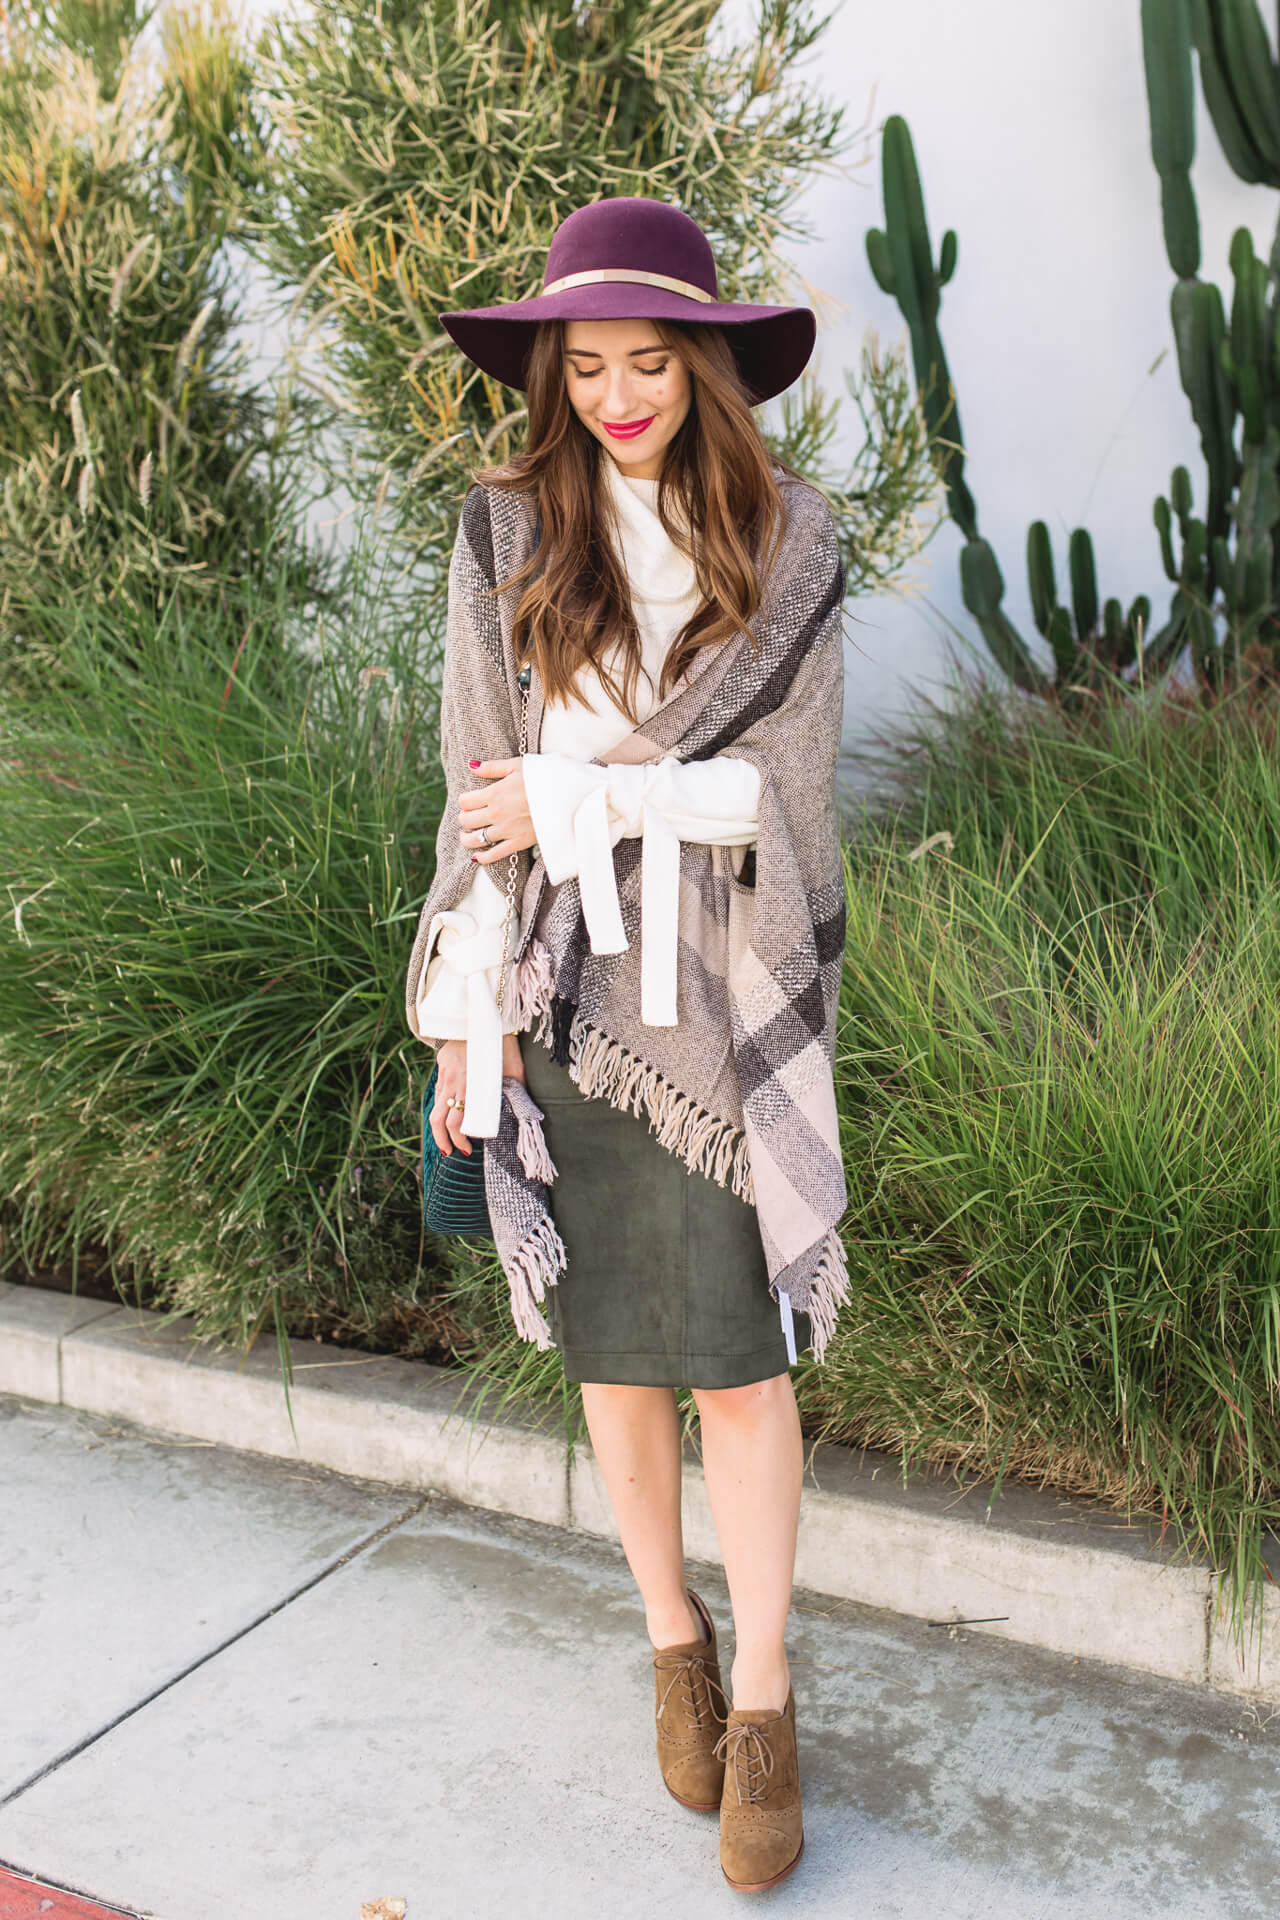 Sharing this suede skirt and plaid poncho look on M Loves M